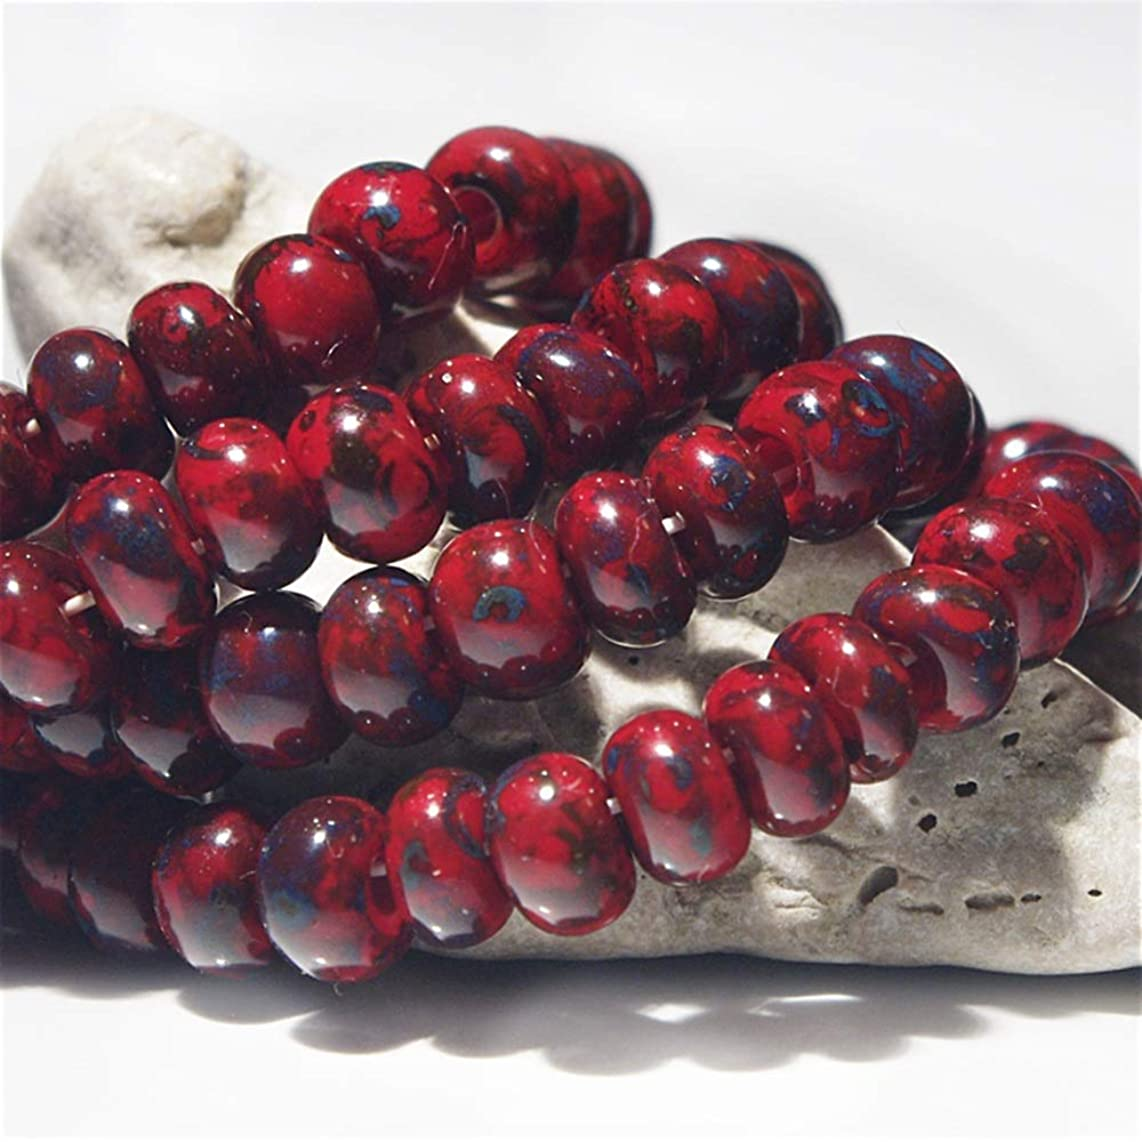 20 g Vinous Red Picasso Travertine 3/0 Czech Glass Seed Beads